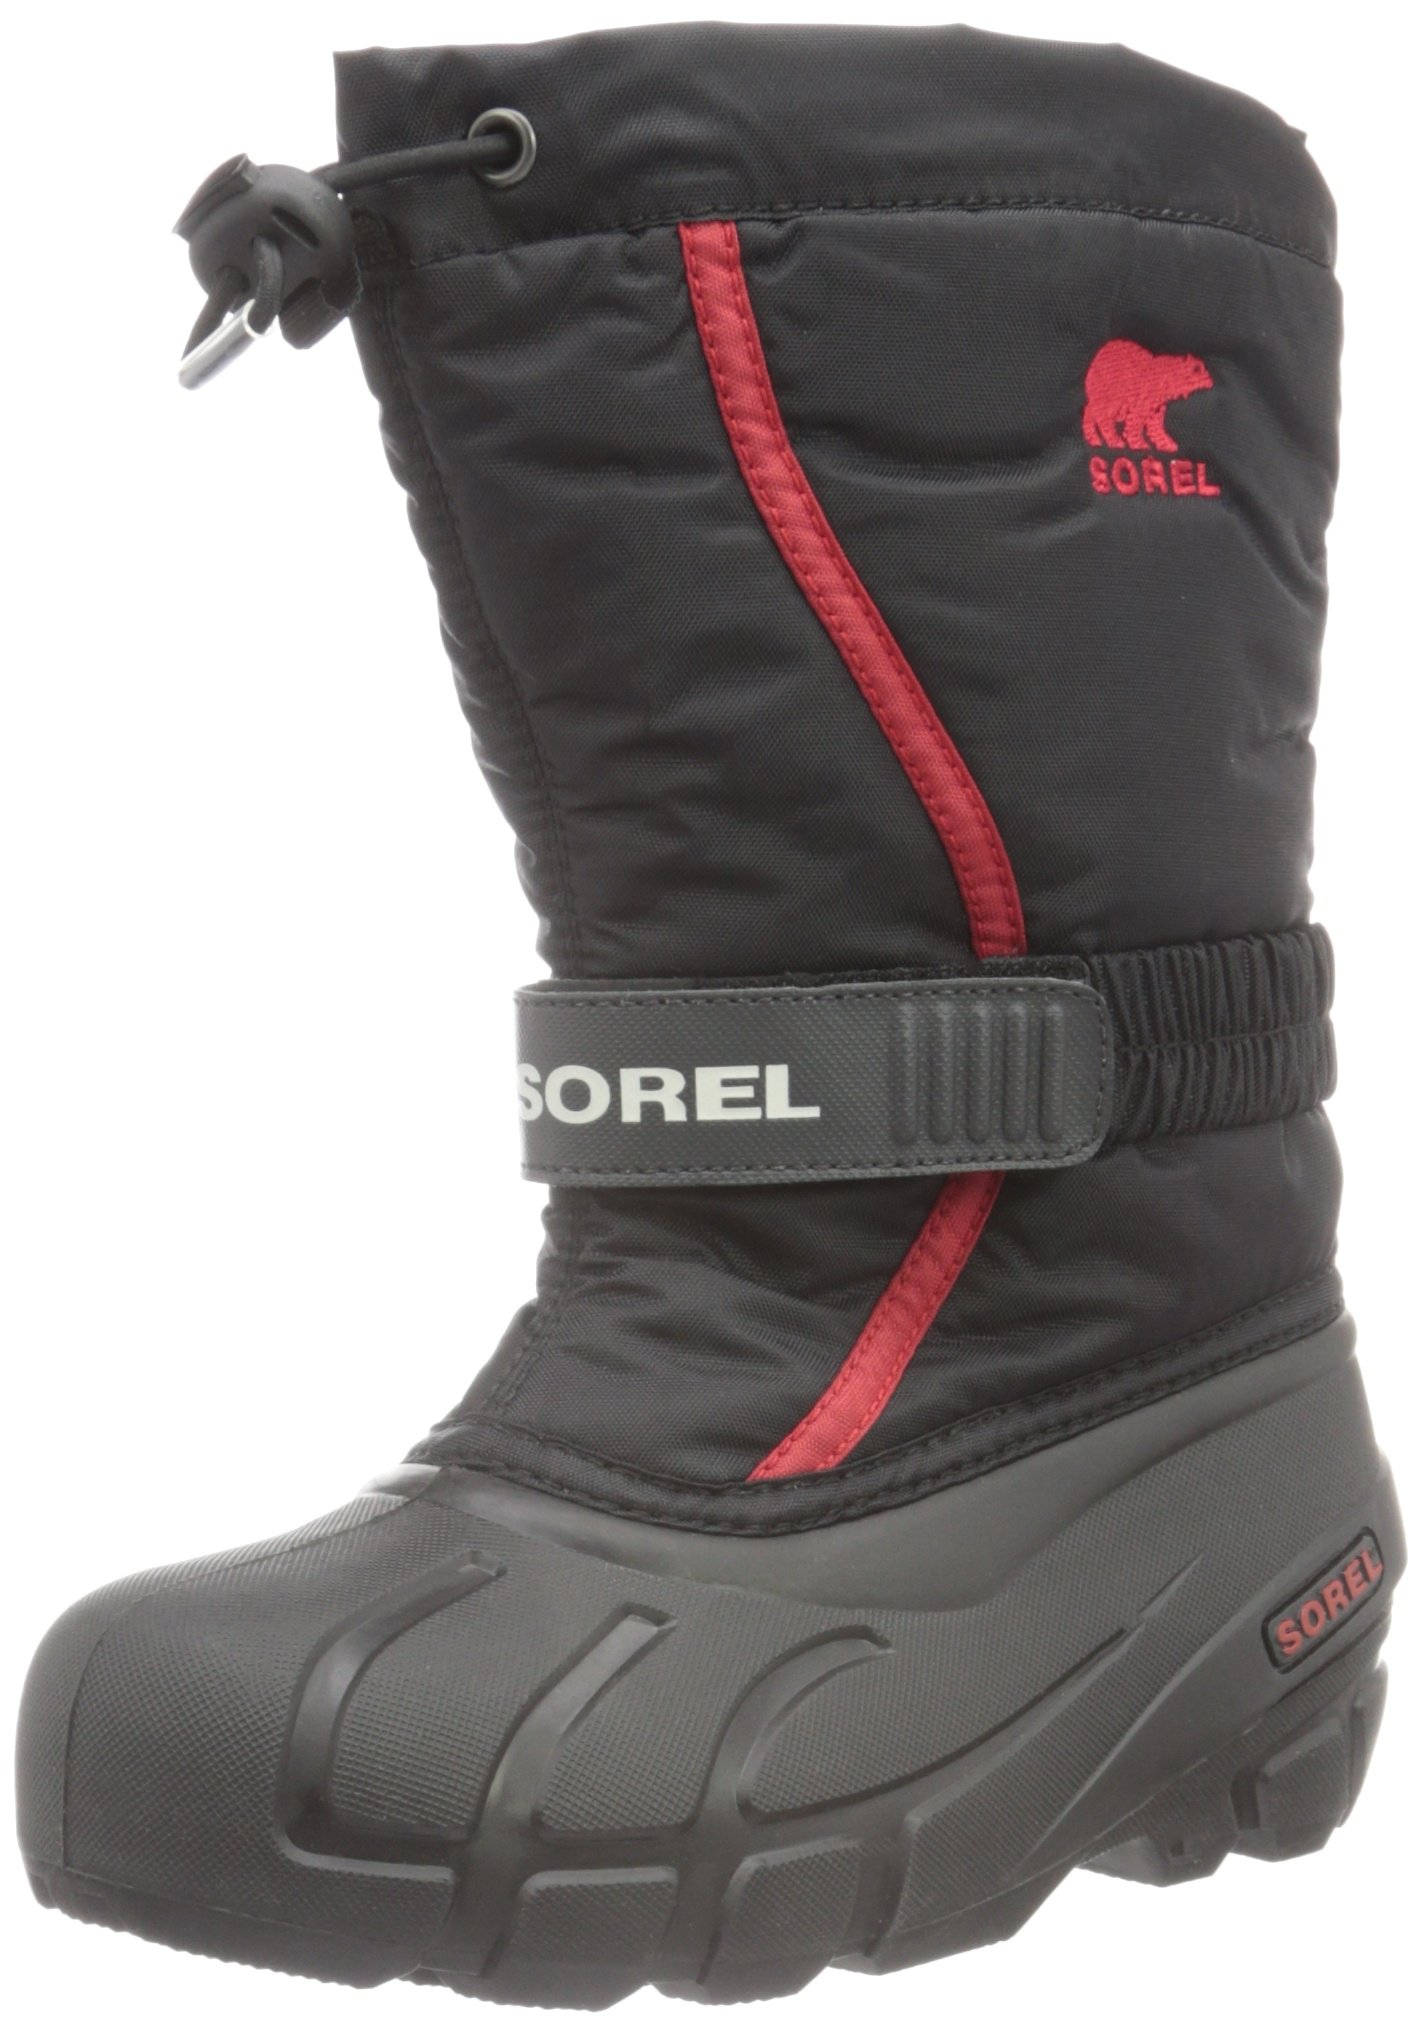 Sorel Youth Flurry-K Snow Boot, Black/Bright Red, 3 M US Little Kid